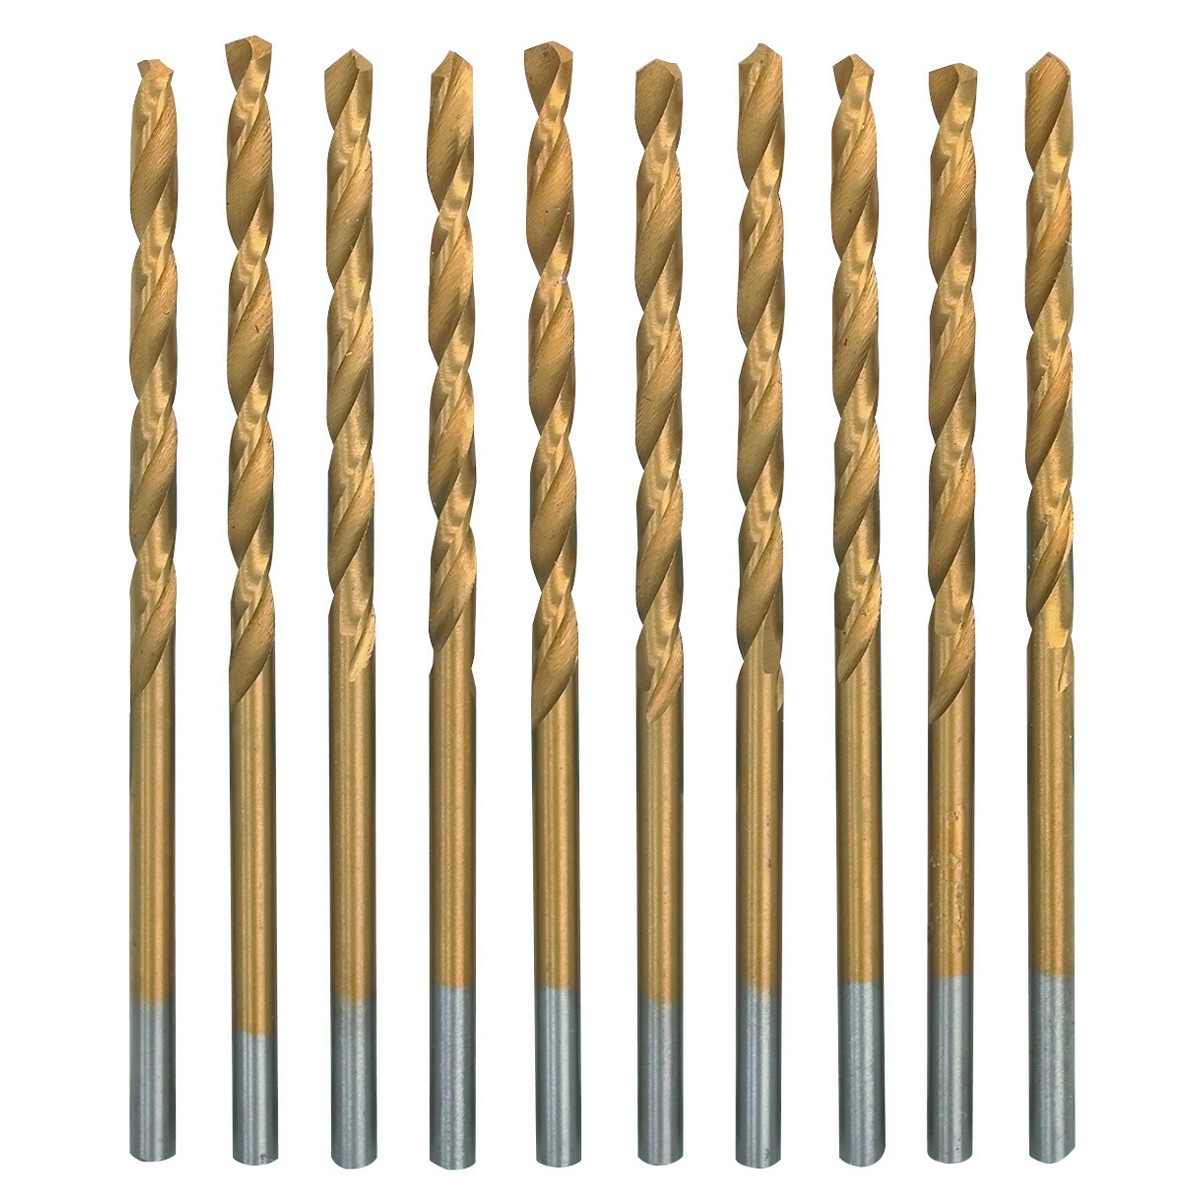 3/32 in. Titanium High Speed Steel Drill Bit Set 7 Pc